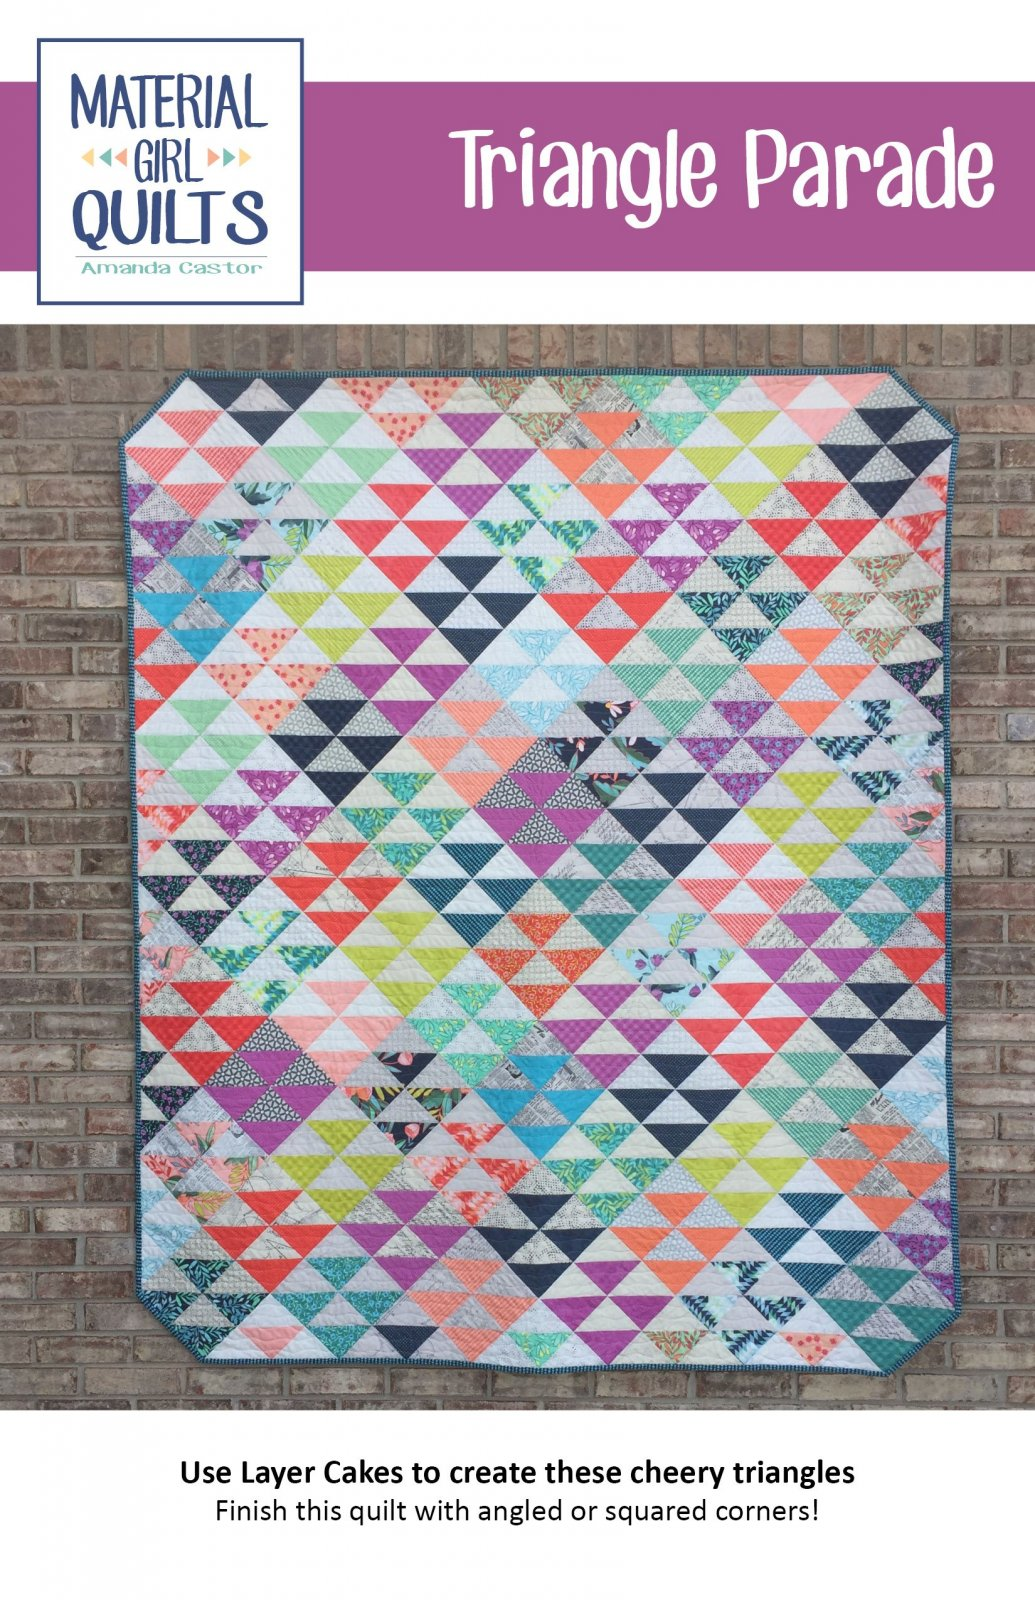 Triangle Parade Pattern by Material Girl Quilts